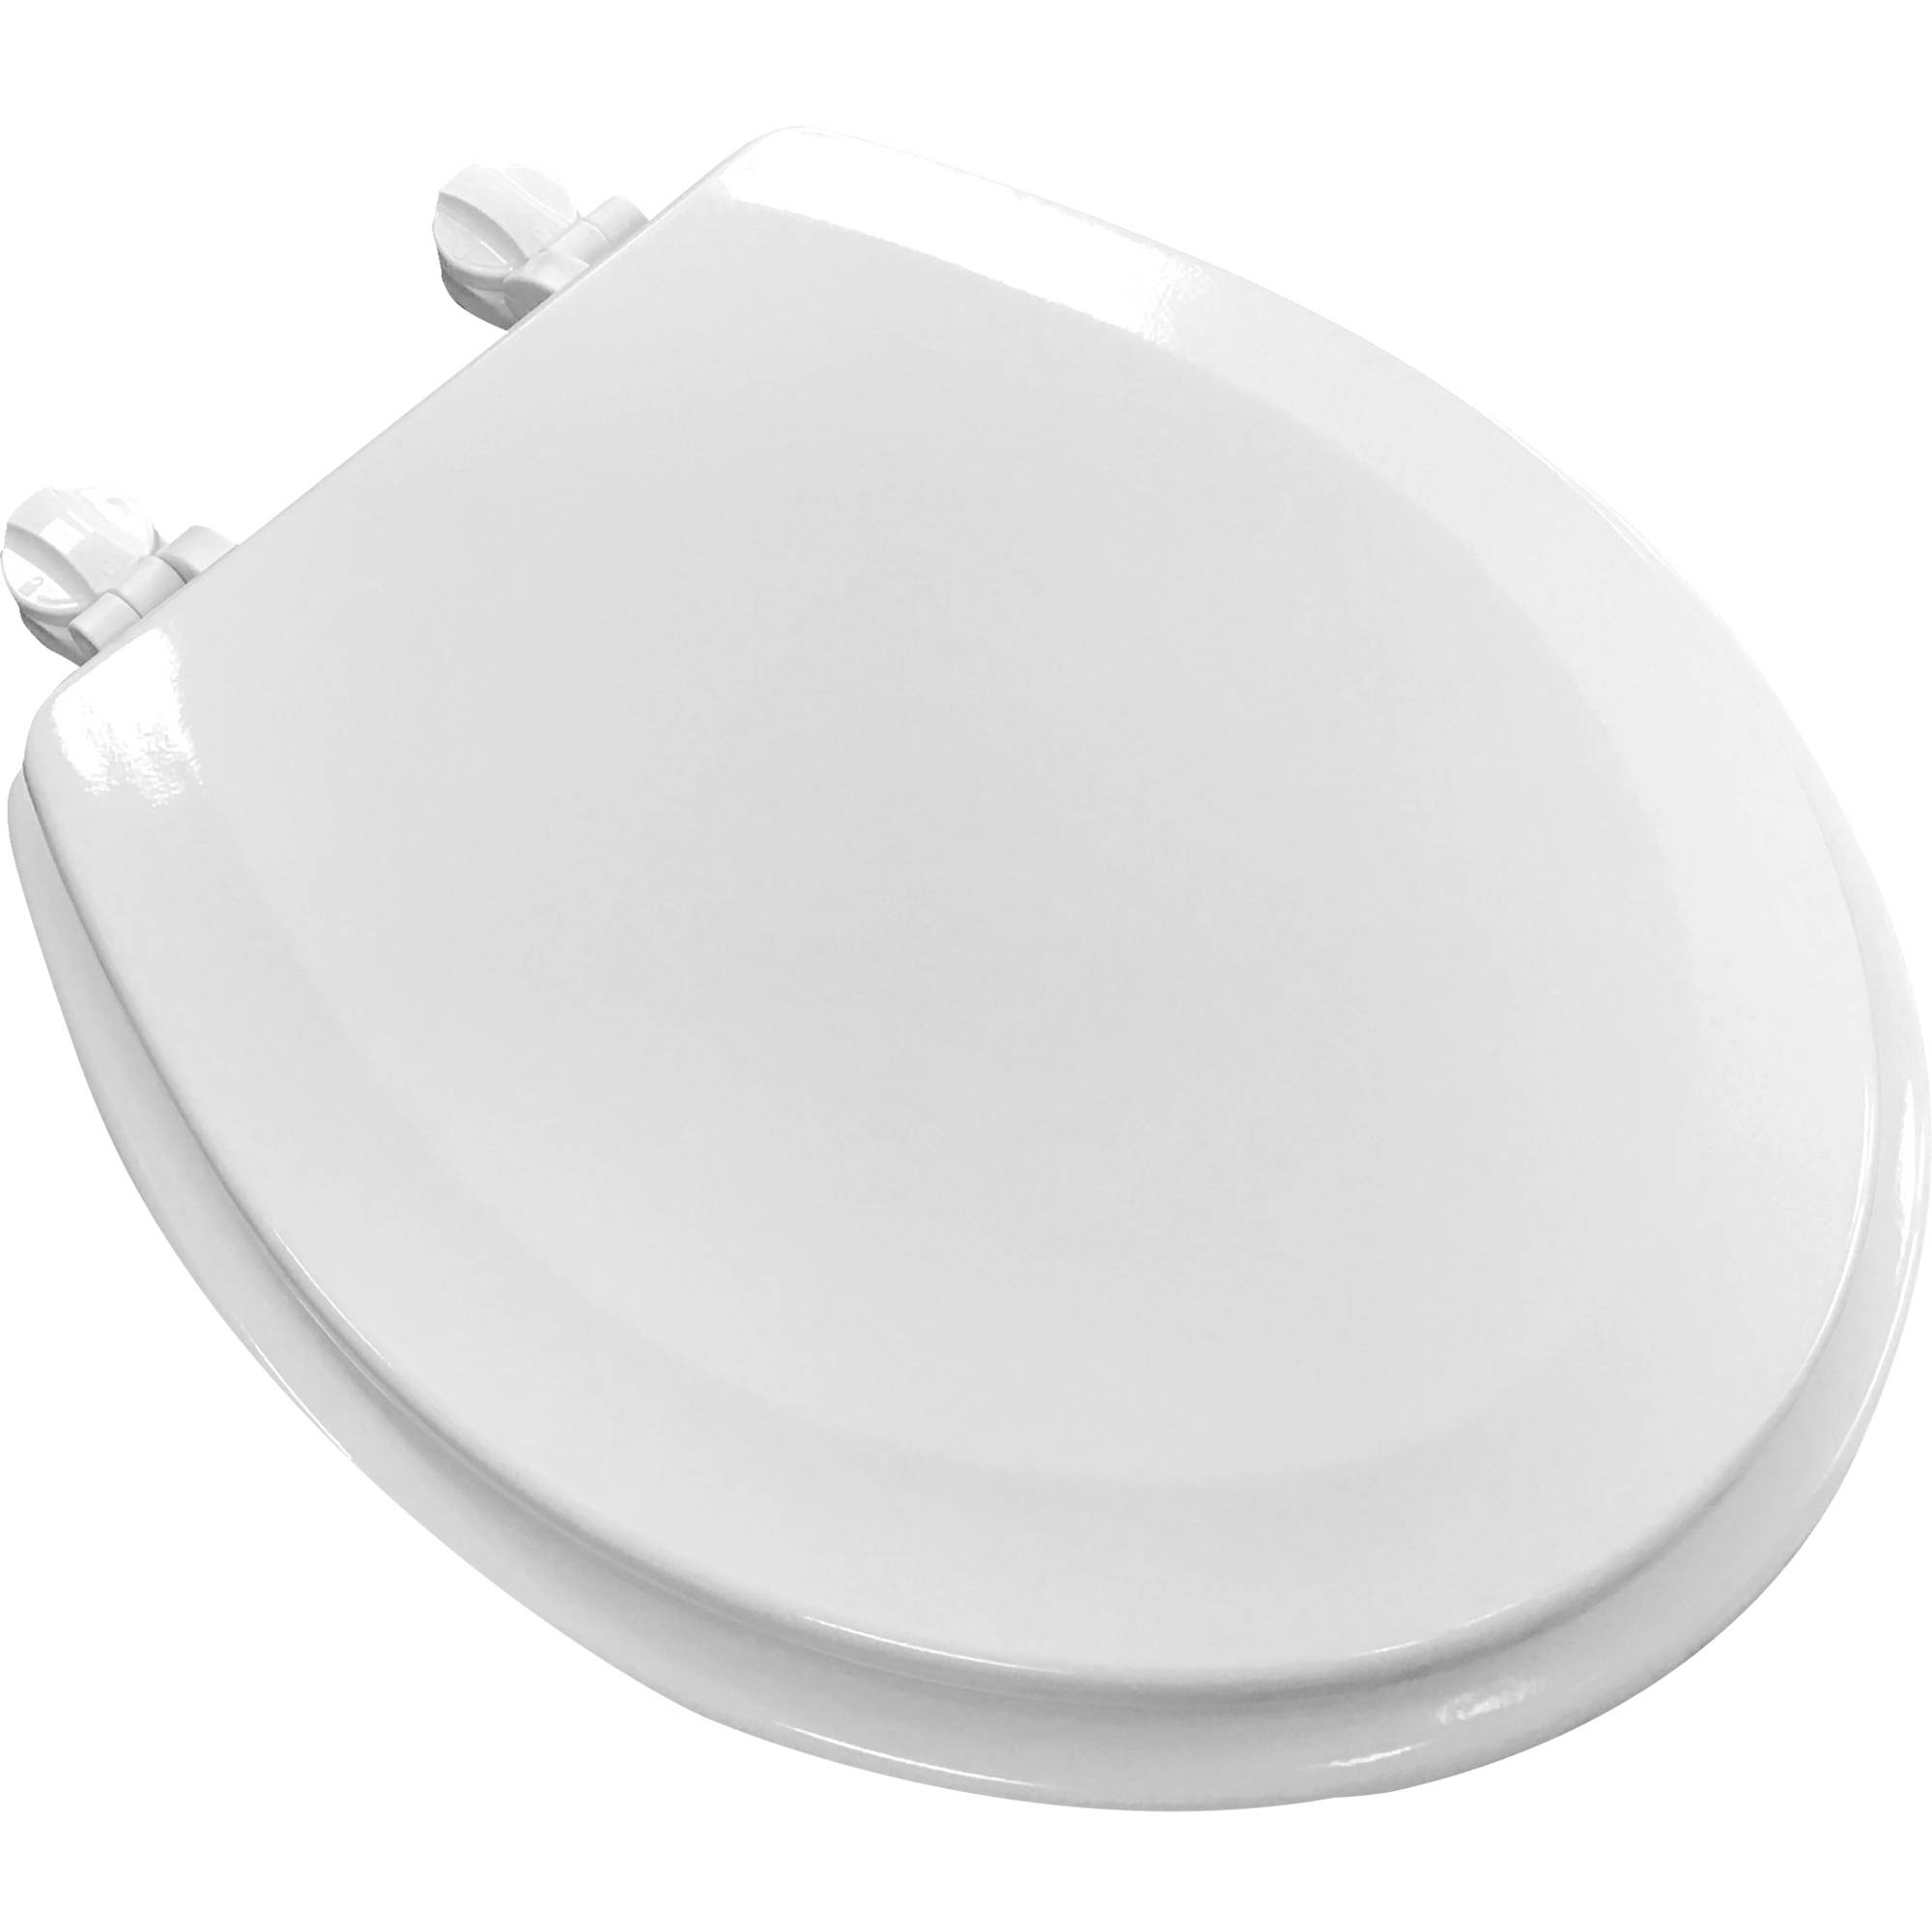 Mainstays Round White Wood Toilet Seat With Easy Off Hinges by GINSEY INDUSTRIES INC